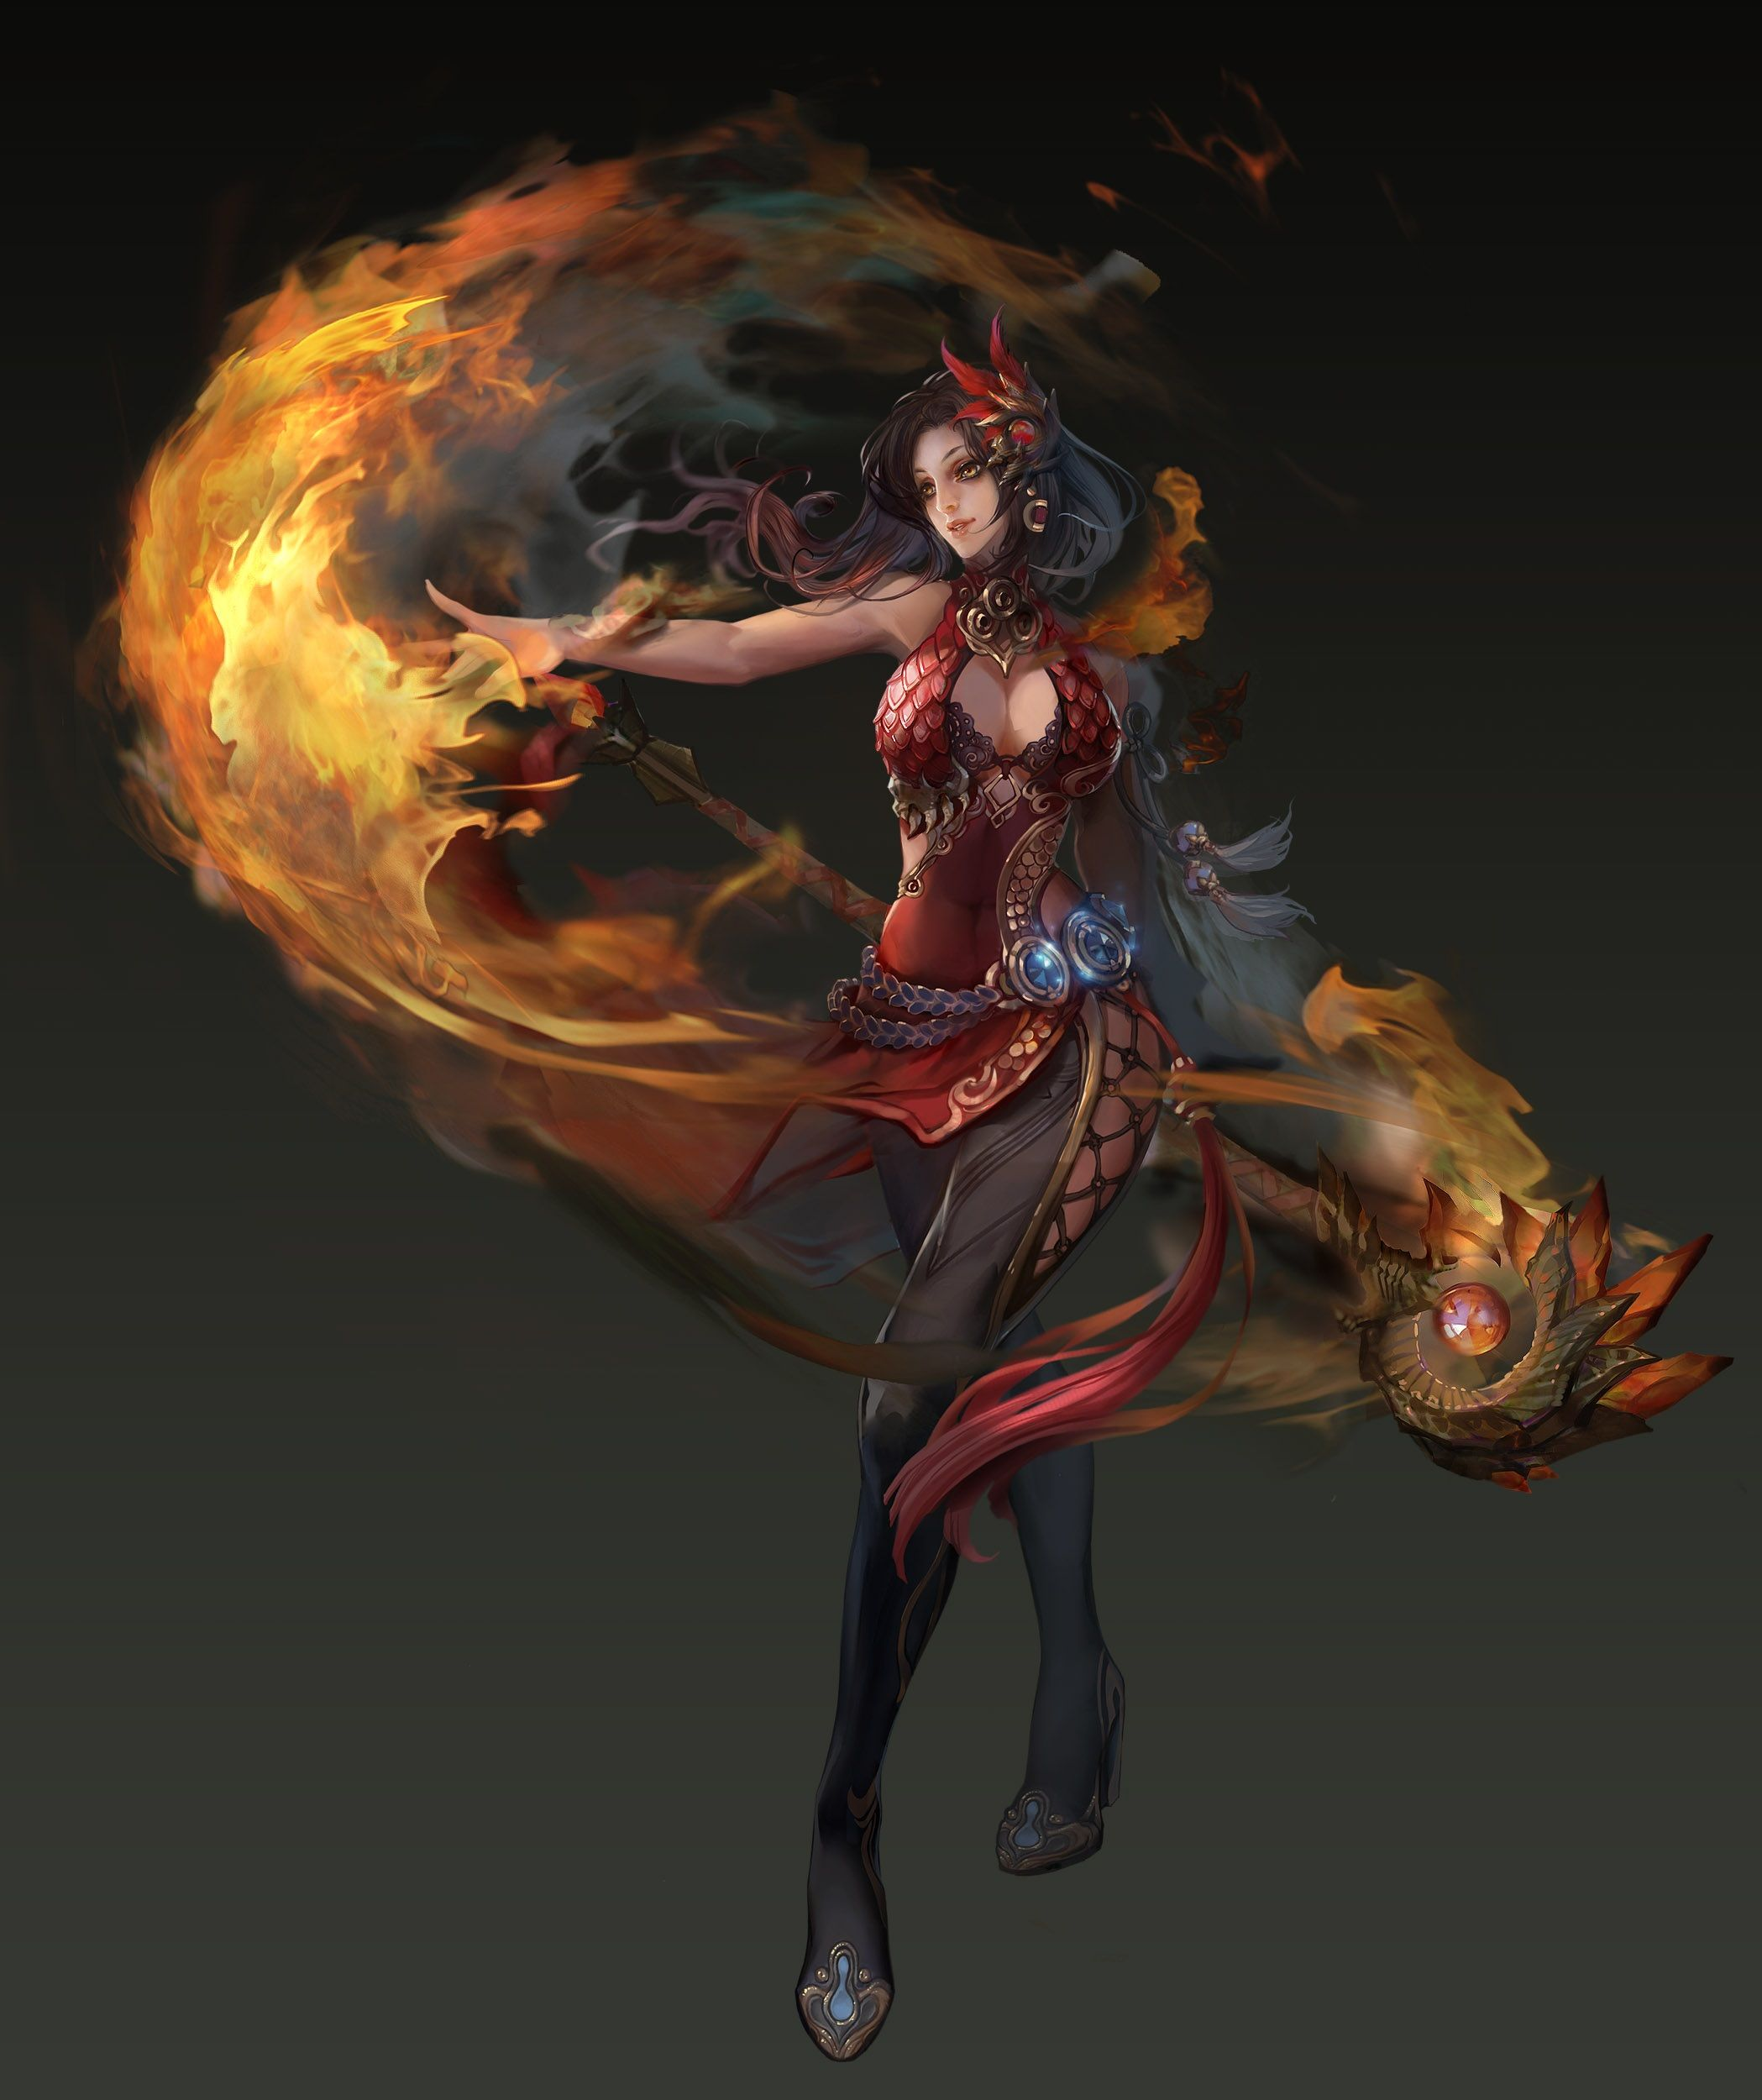 Pyromancer (With images) Anime art fantasy, Fantasy